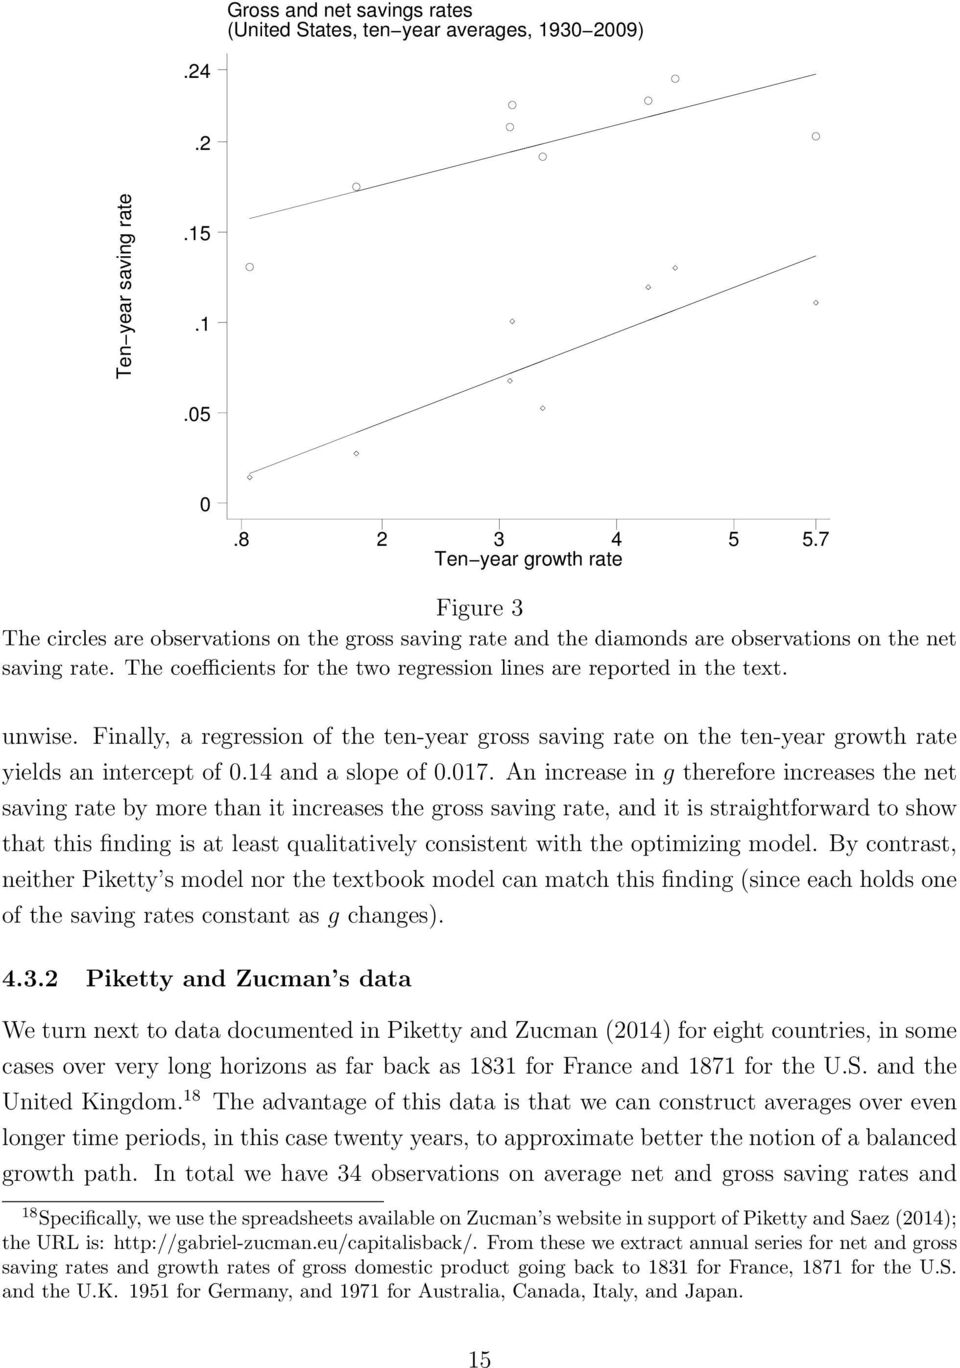 The coefficients for the two regression lines are reported in the text. unwise. Finally, a regression of the ten-year gross saving rate on the ten-year growth rate yields an intercept of 0.